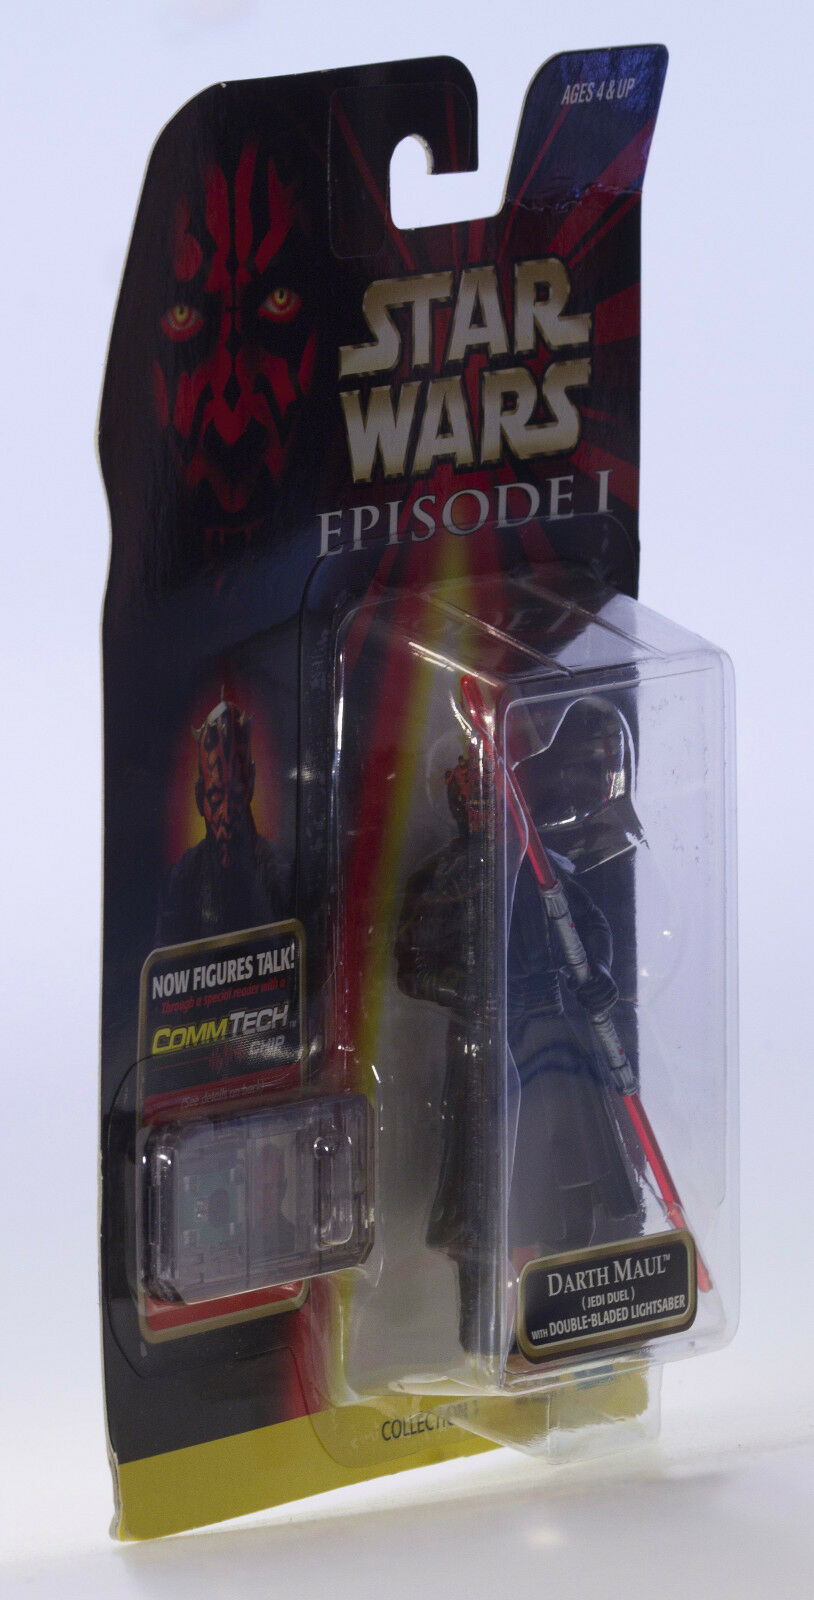 MOC STAR WARS Darth Maul Jedi Duel Rare Version Version Version Episode 1 CommTech Chip Figure 153cc6